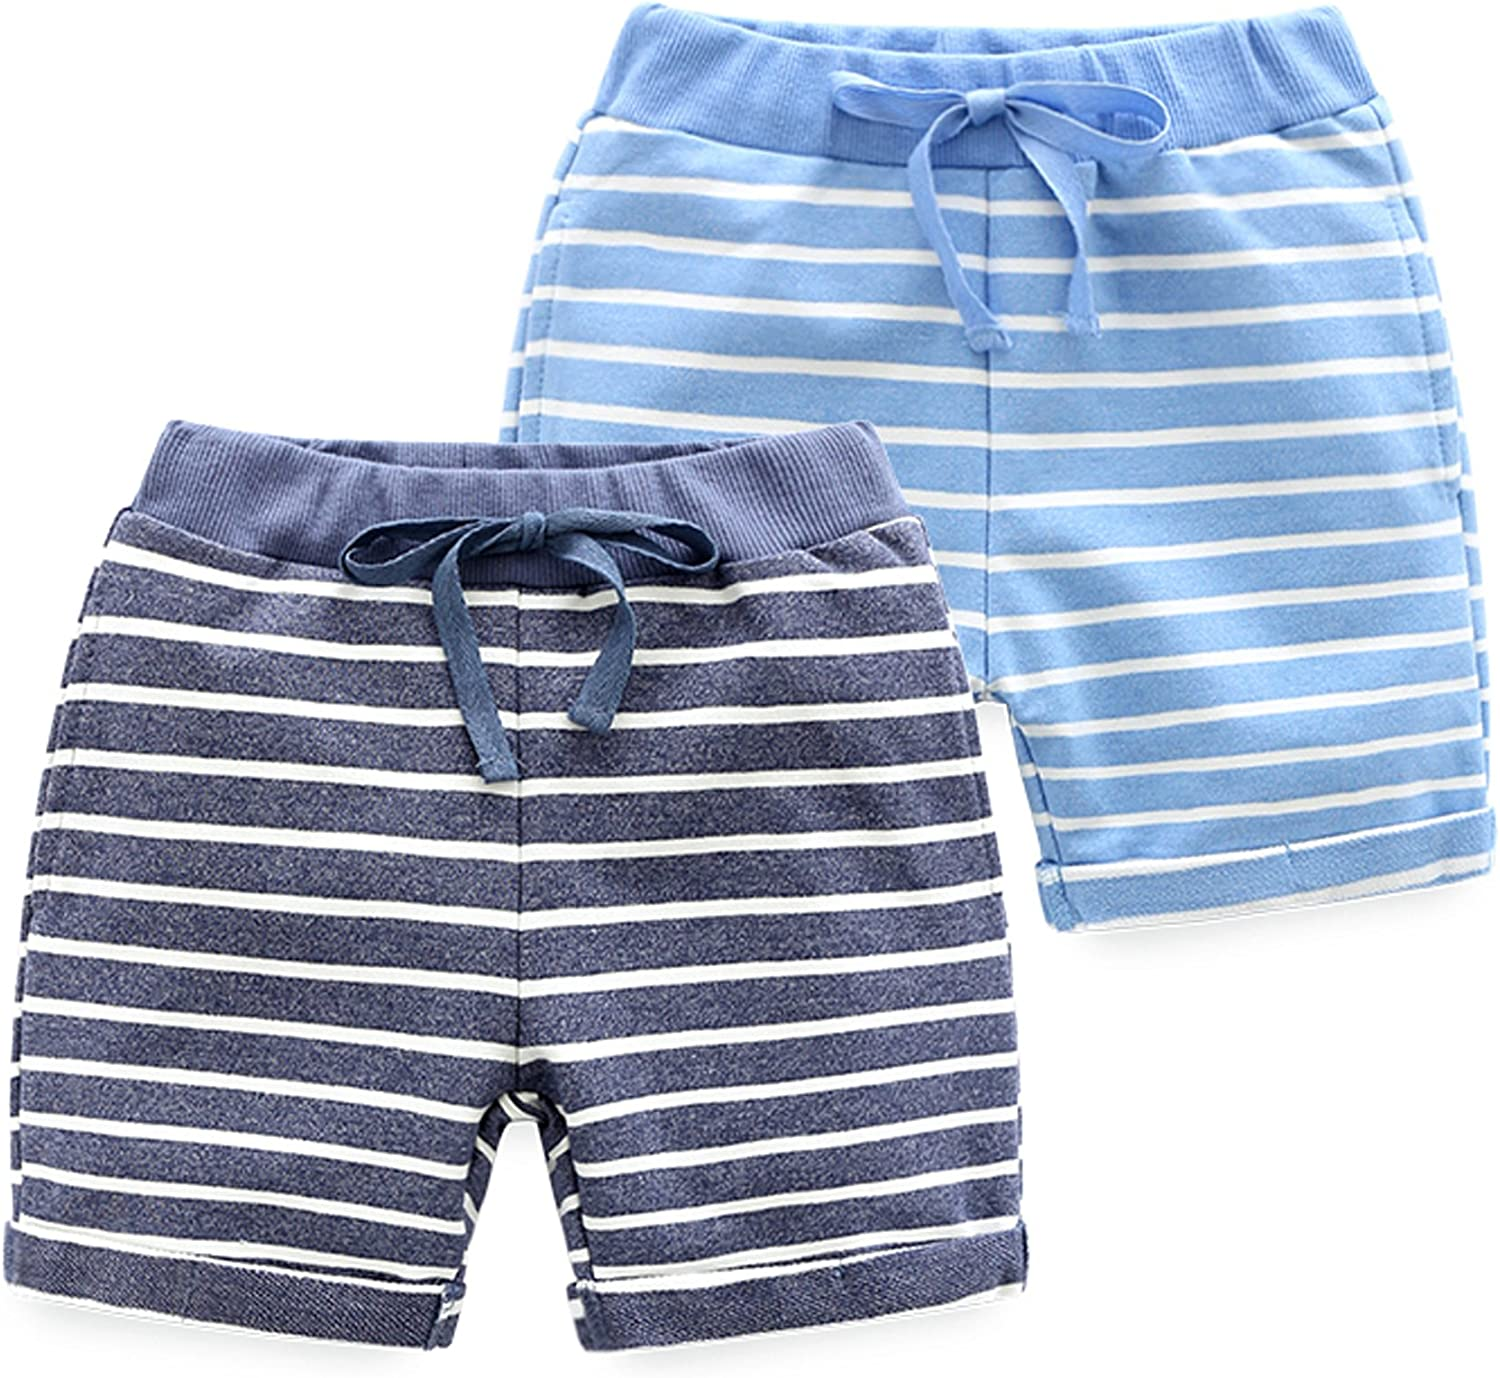 Pack HUAER/& Baby Boys Summer Knit Shorts 2